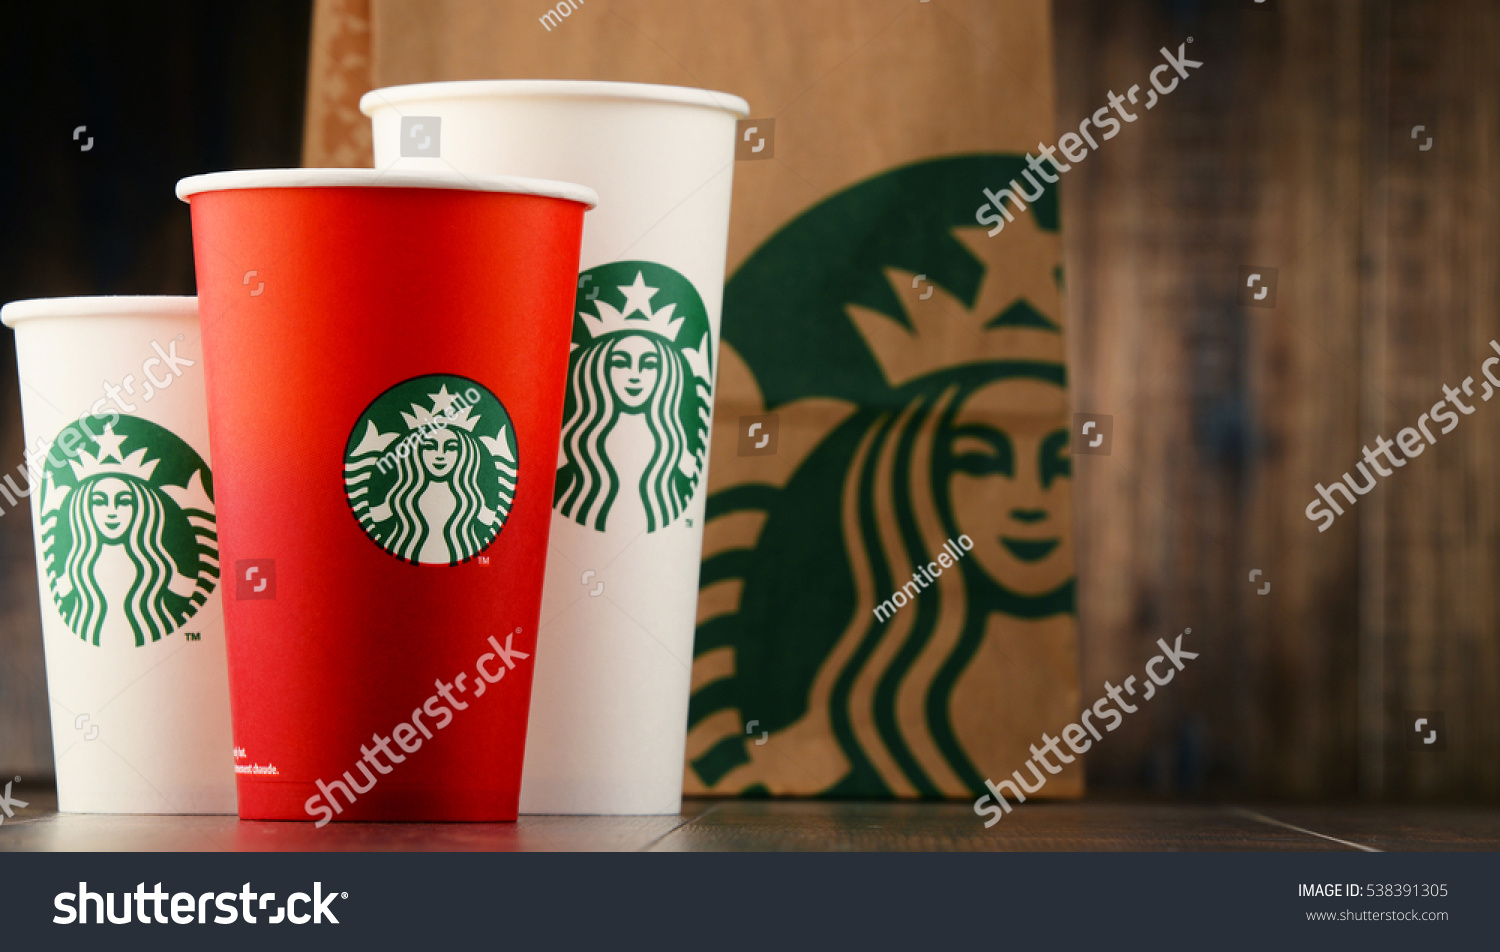 POZNAN POLAND DEC 15 2016 Starbucks coffee company and coffeehouse chain founded in Seattle Wa USA in 1971 now the largest business of this kind in the world operates 23 450 locations